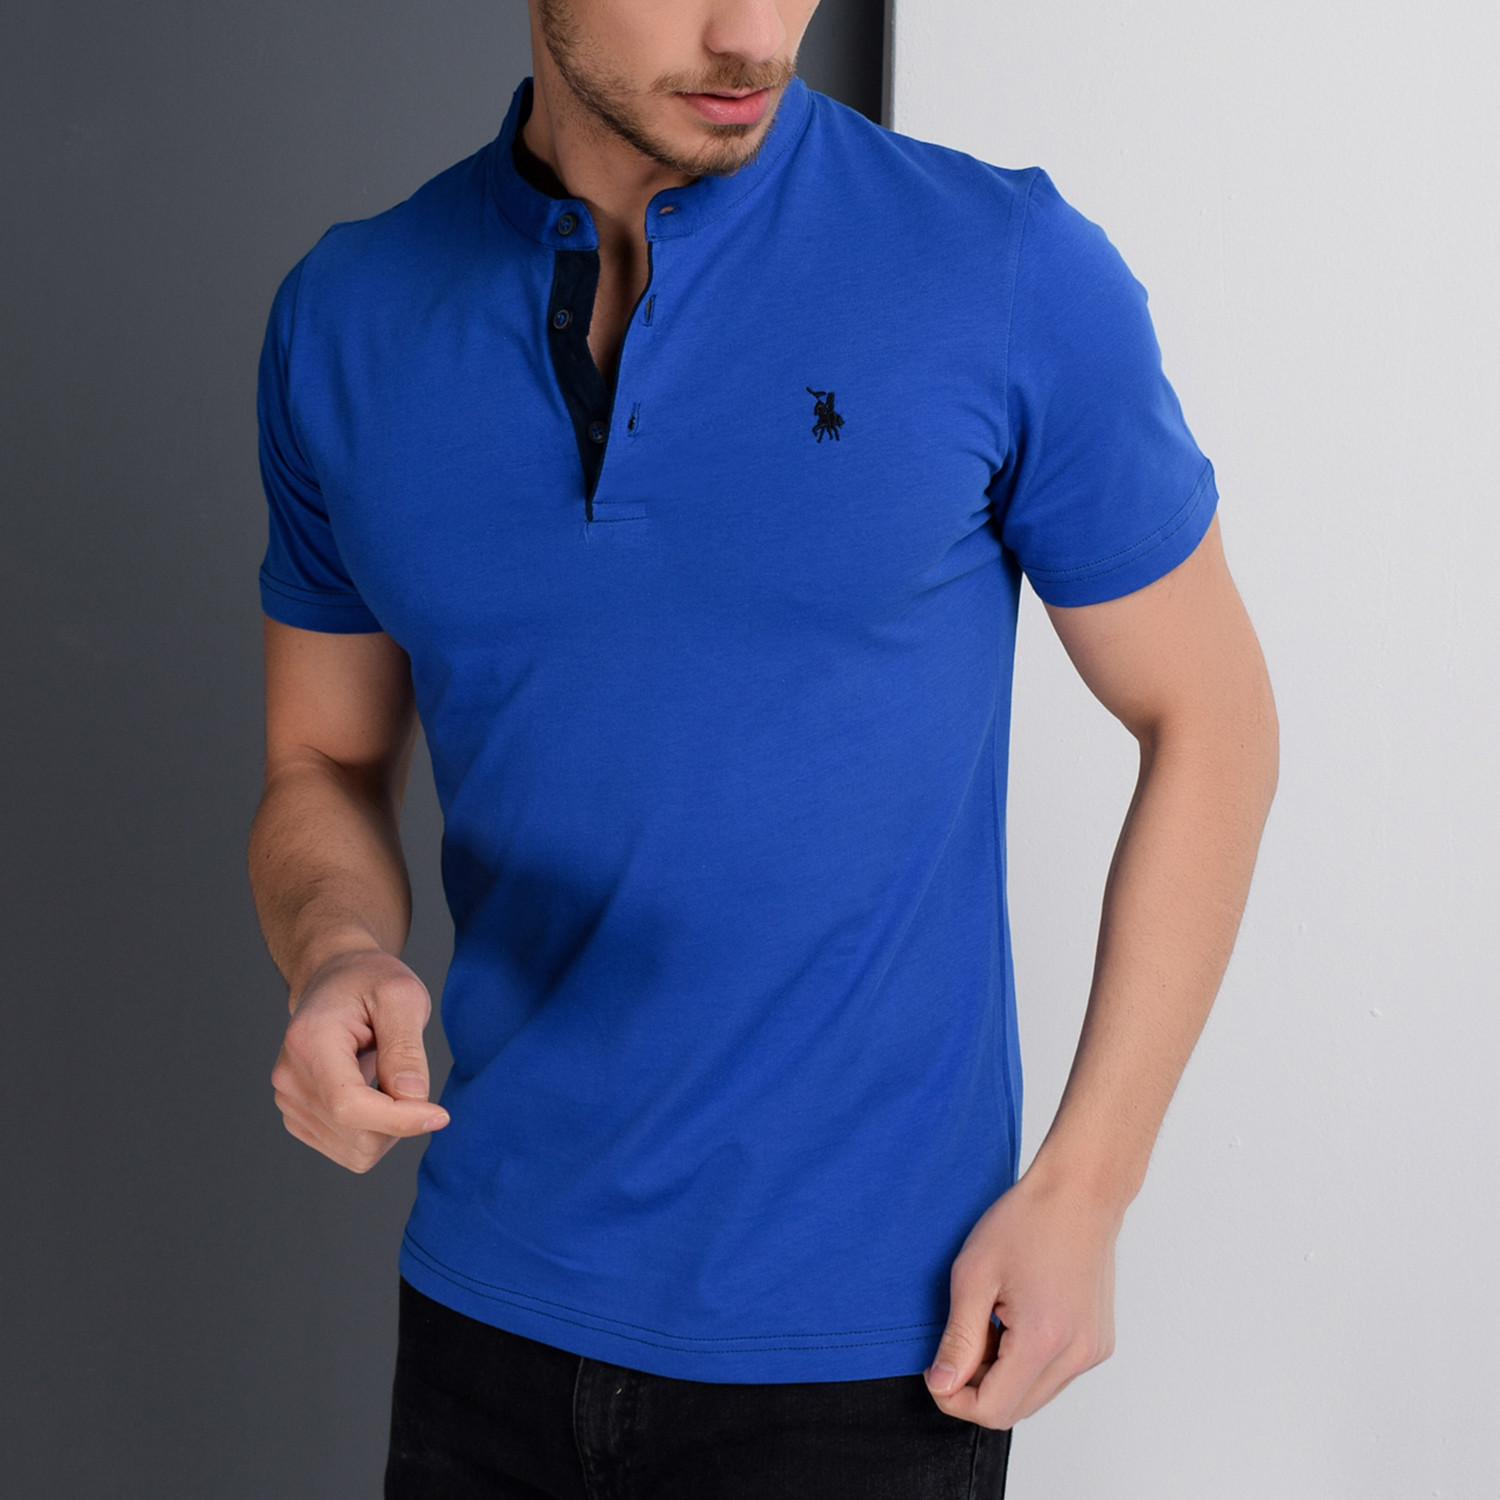 360dfad8 T8560 Collarless Polo // Sax (S) - Dewberry - Touch of Modern